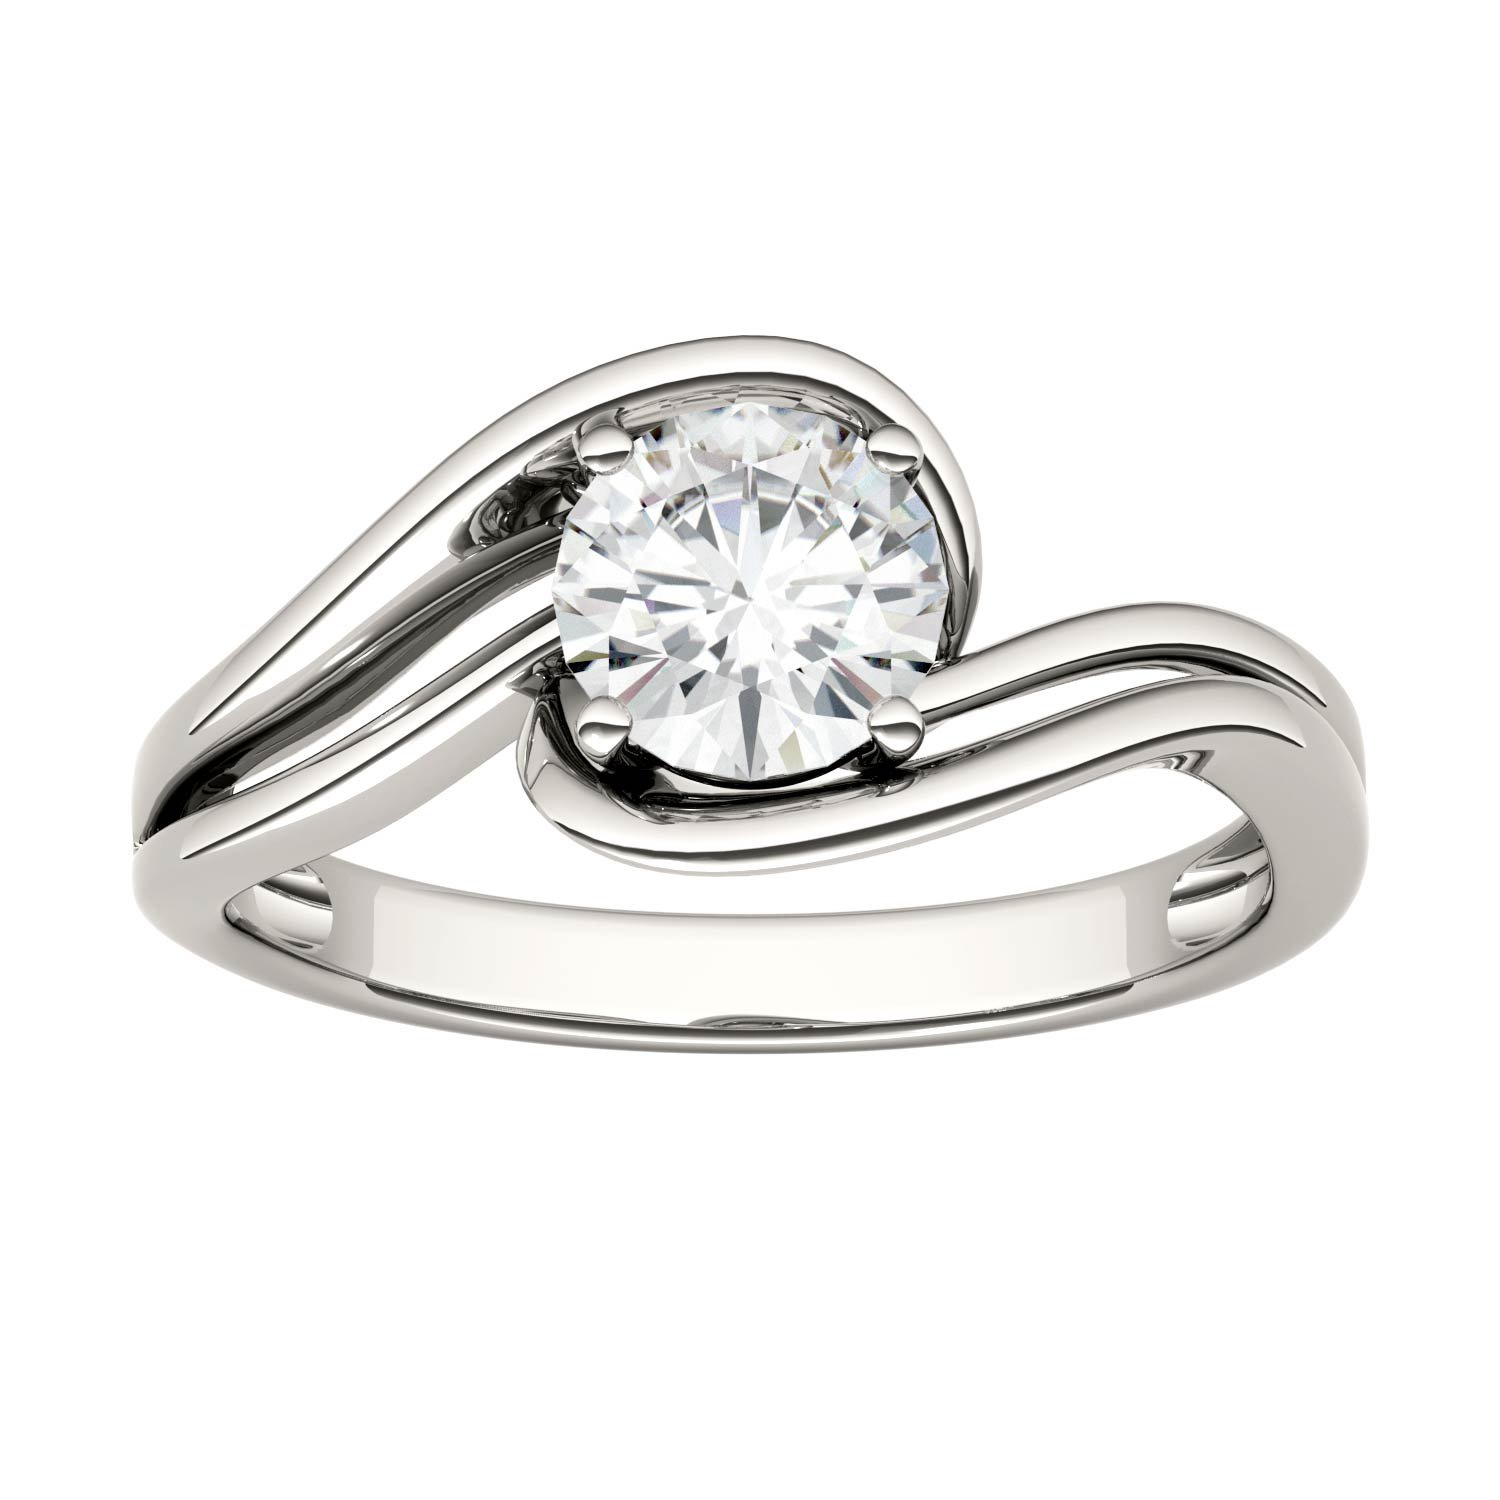 Forever Classic Round 6.0mm Moissanite Engagement Ring-size 5, 0.80ct DEW By Charles & Colvard